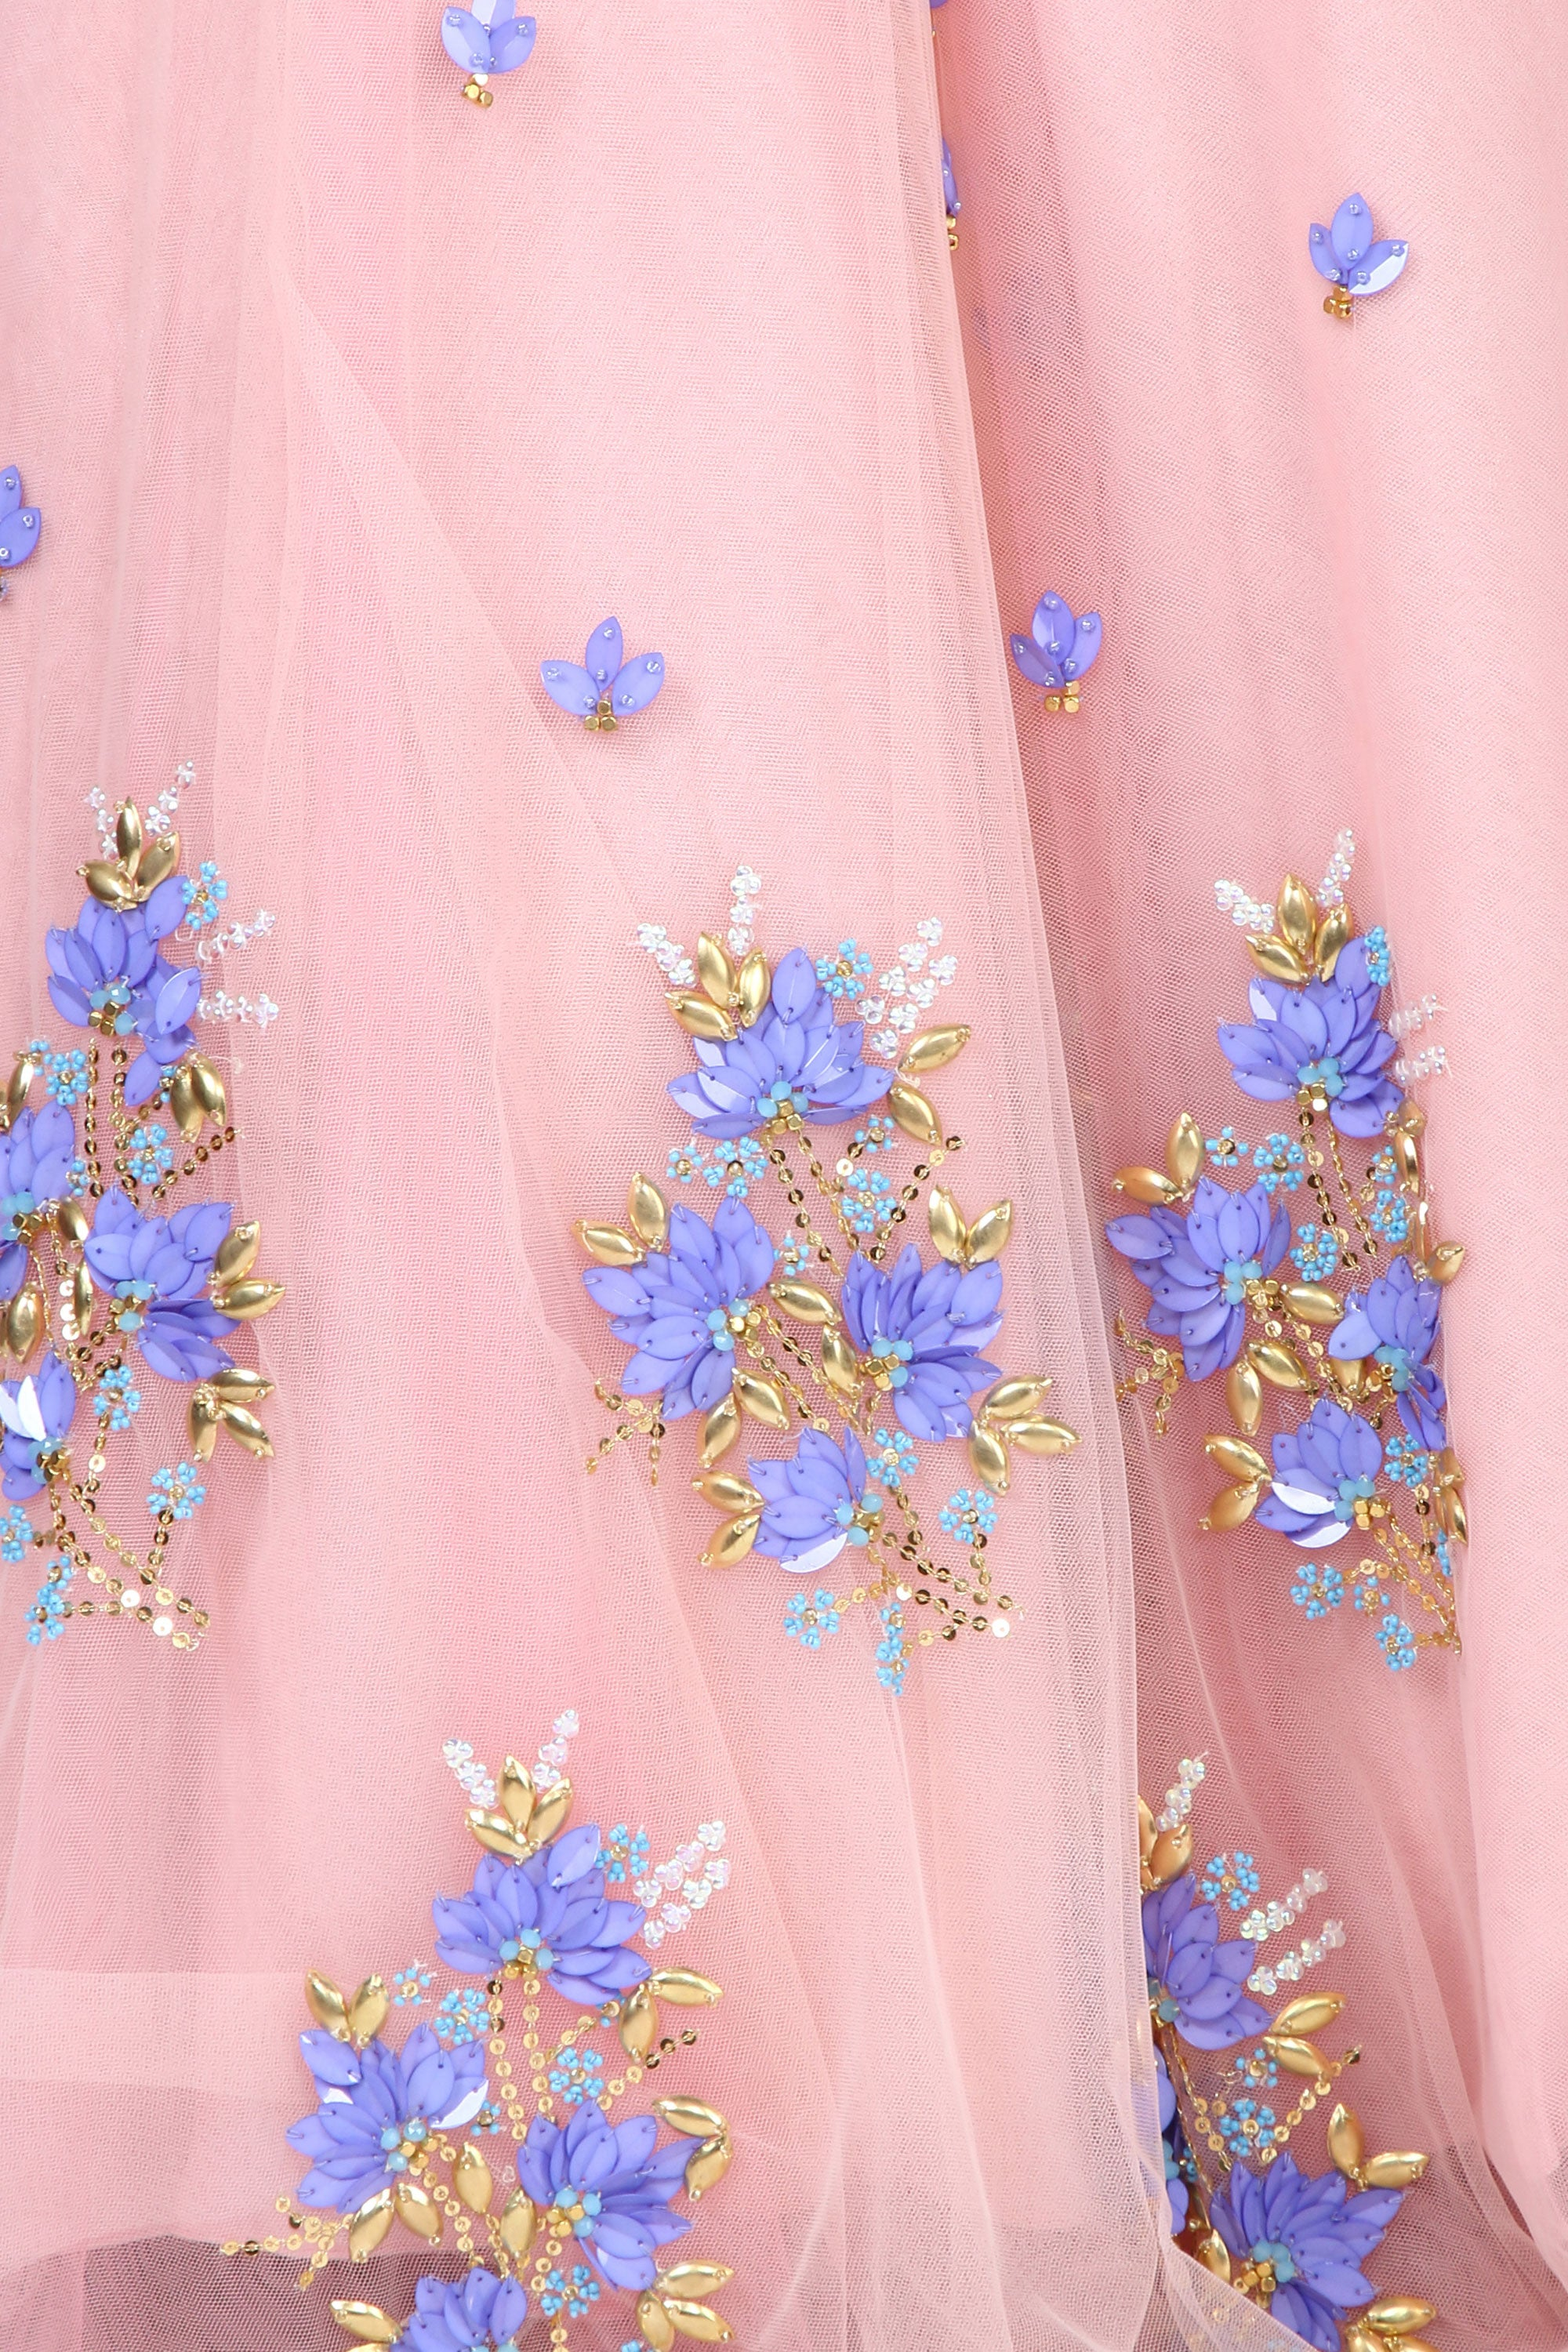 Floral Embroidery Blush Tulle Skirt Set Closeup